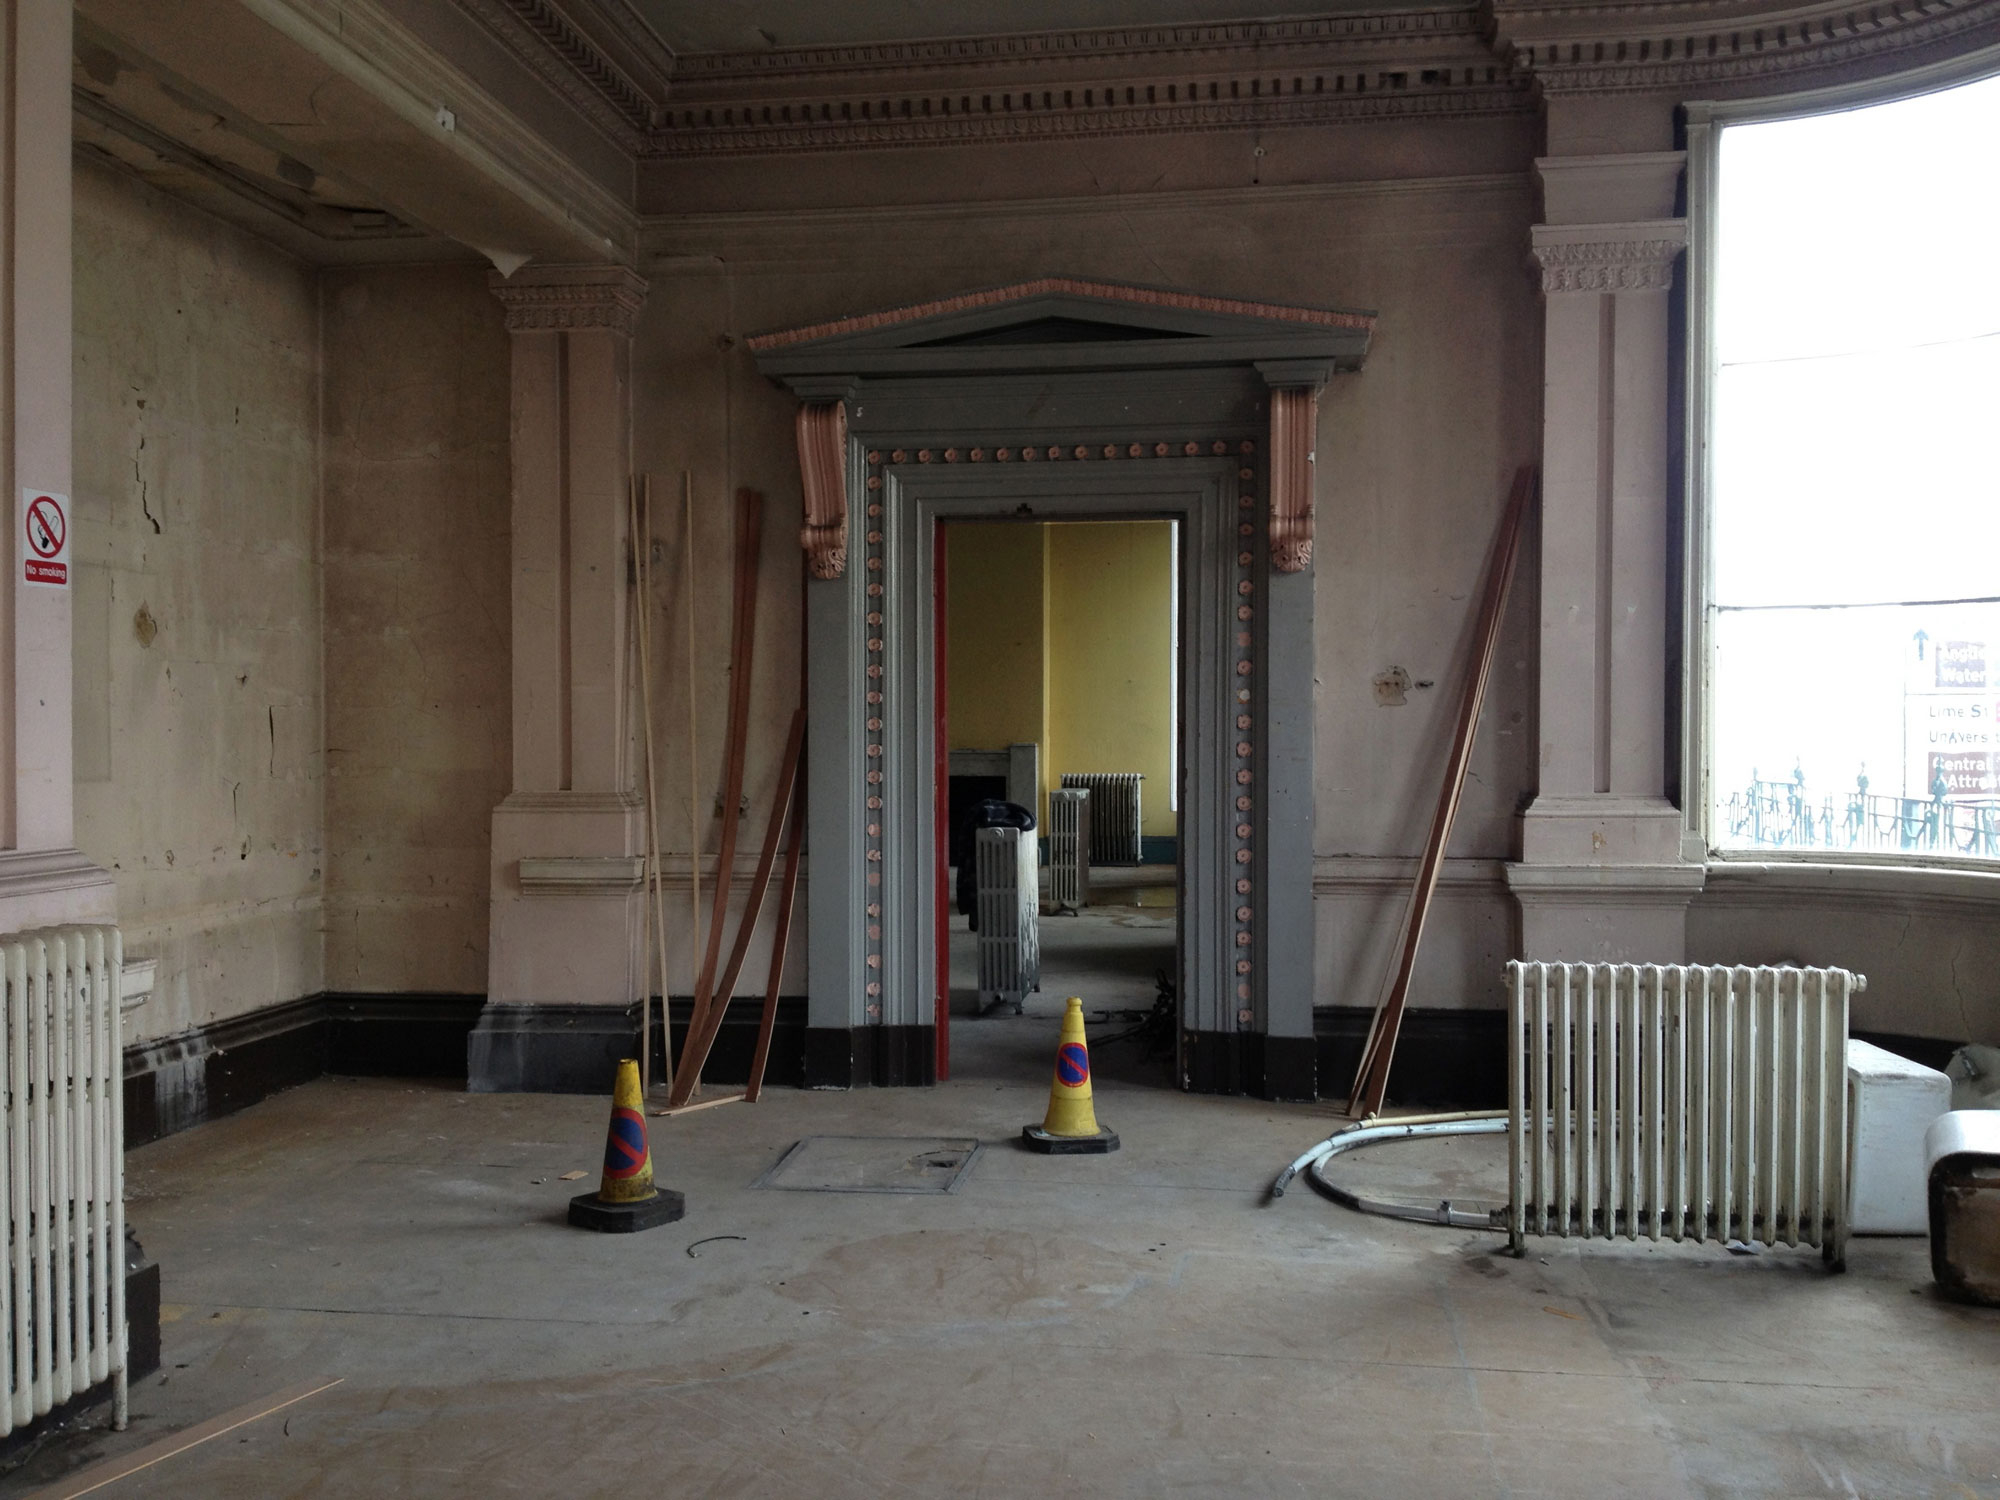 Building under renovation, slightly less peeling paint and a radiator and two cones in the middle of the floor as the regeneration progresses.